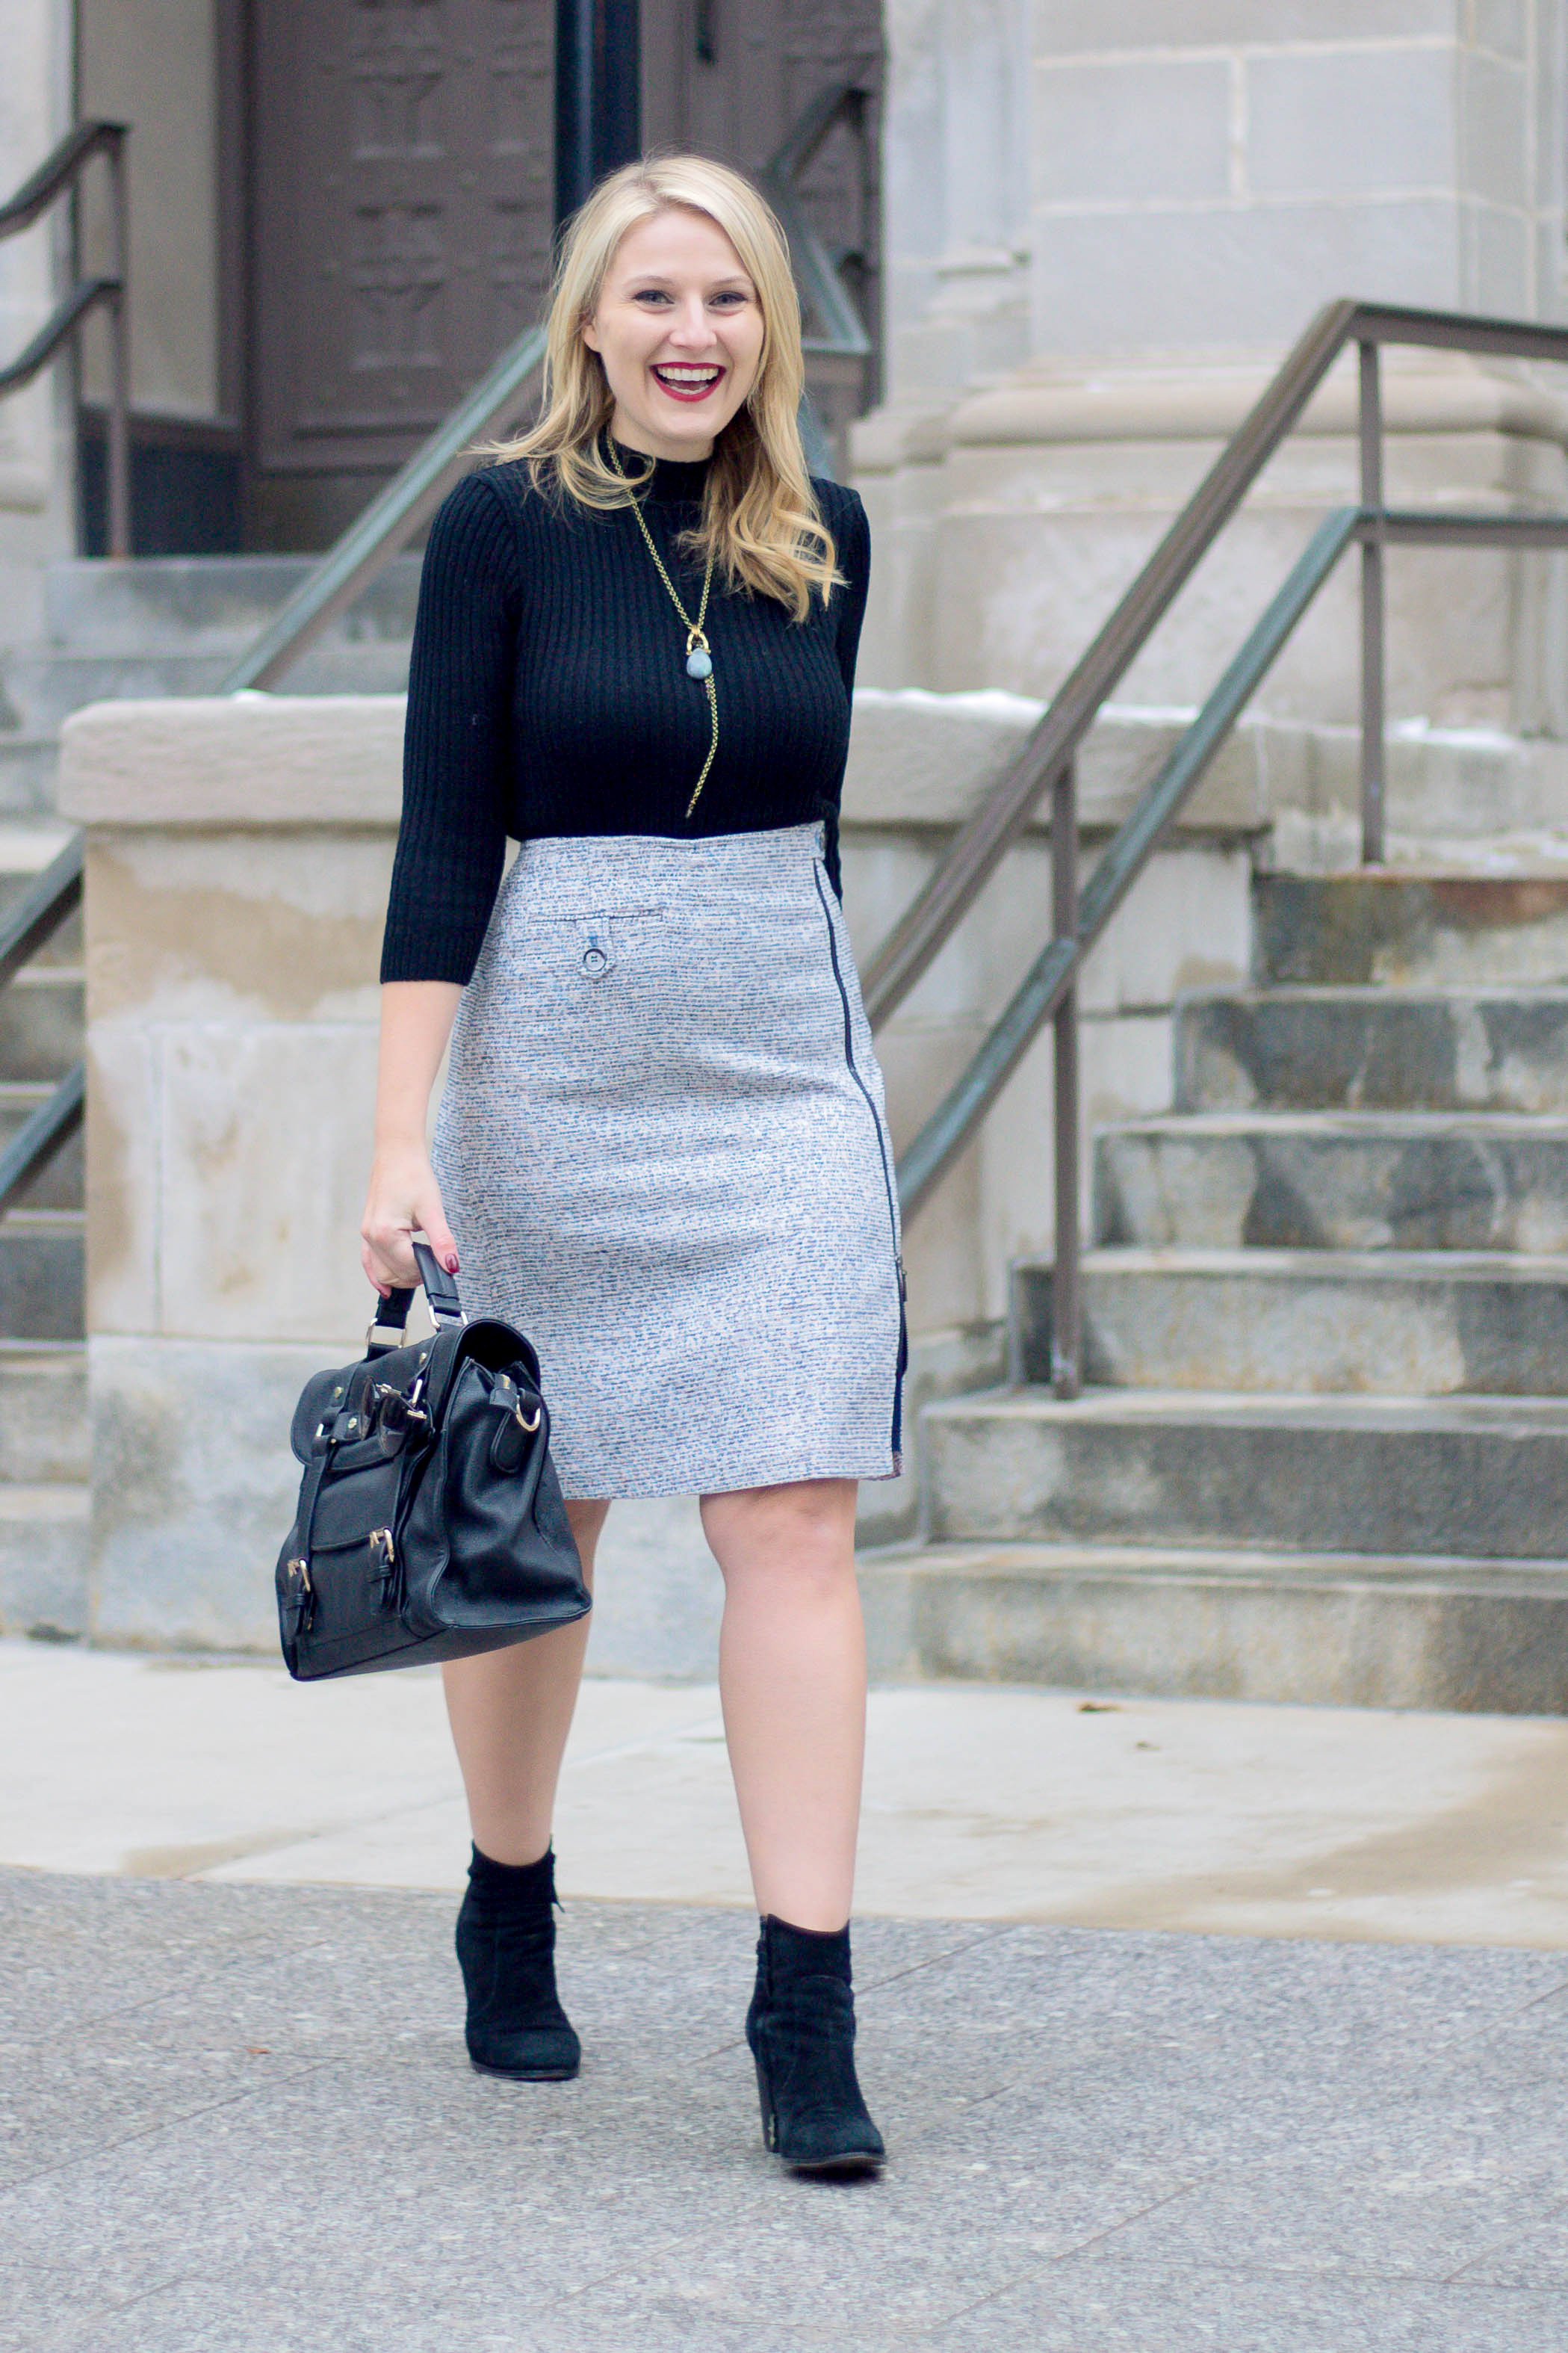 How to wear a tweed skirt this winter